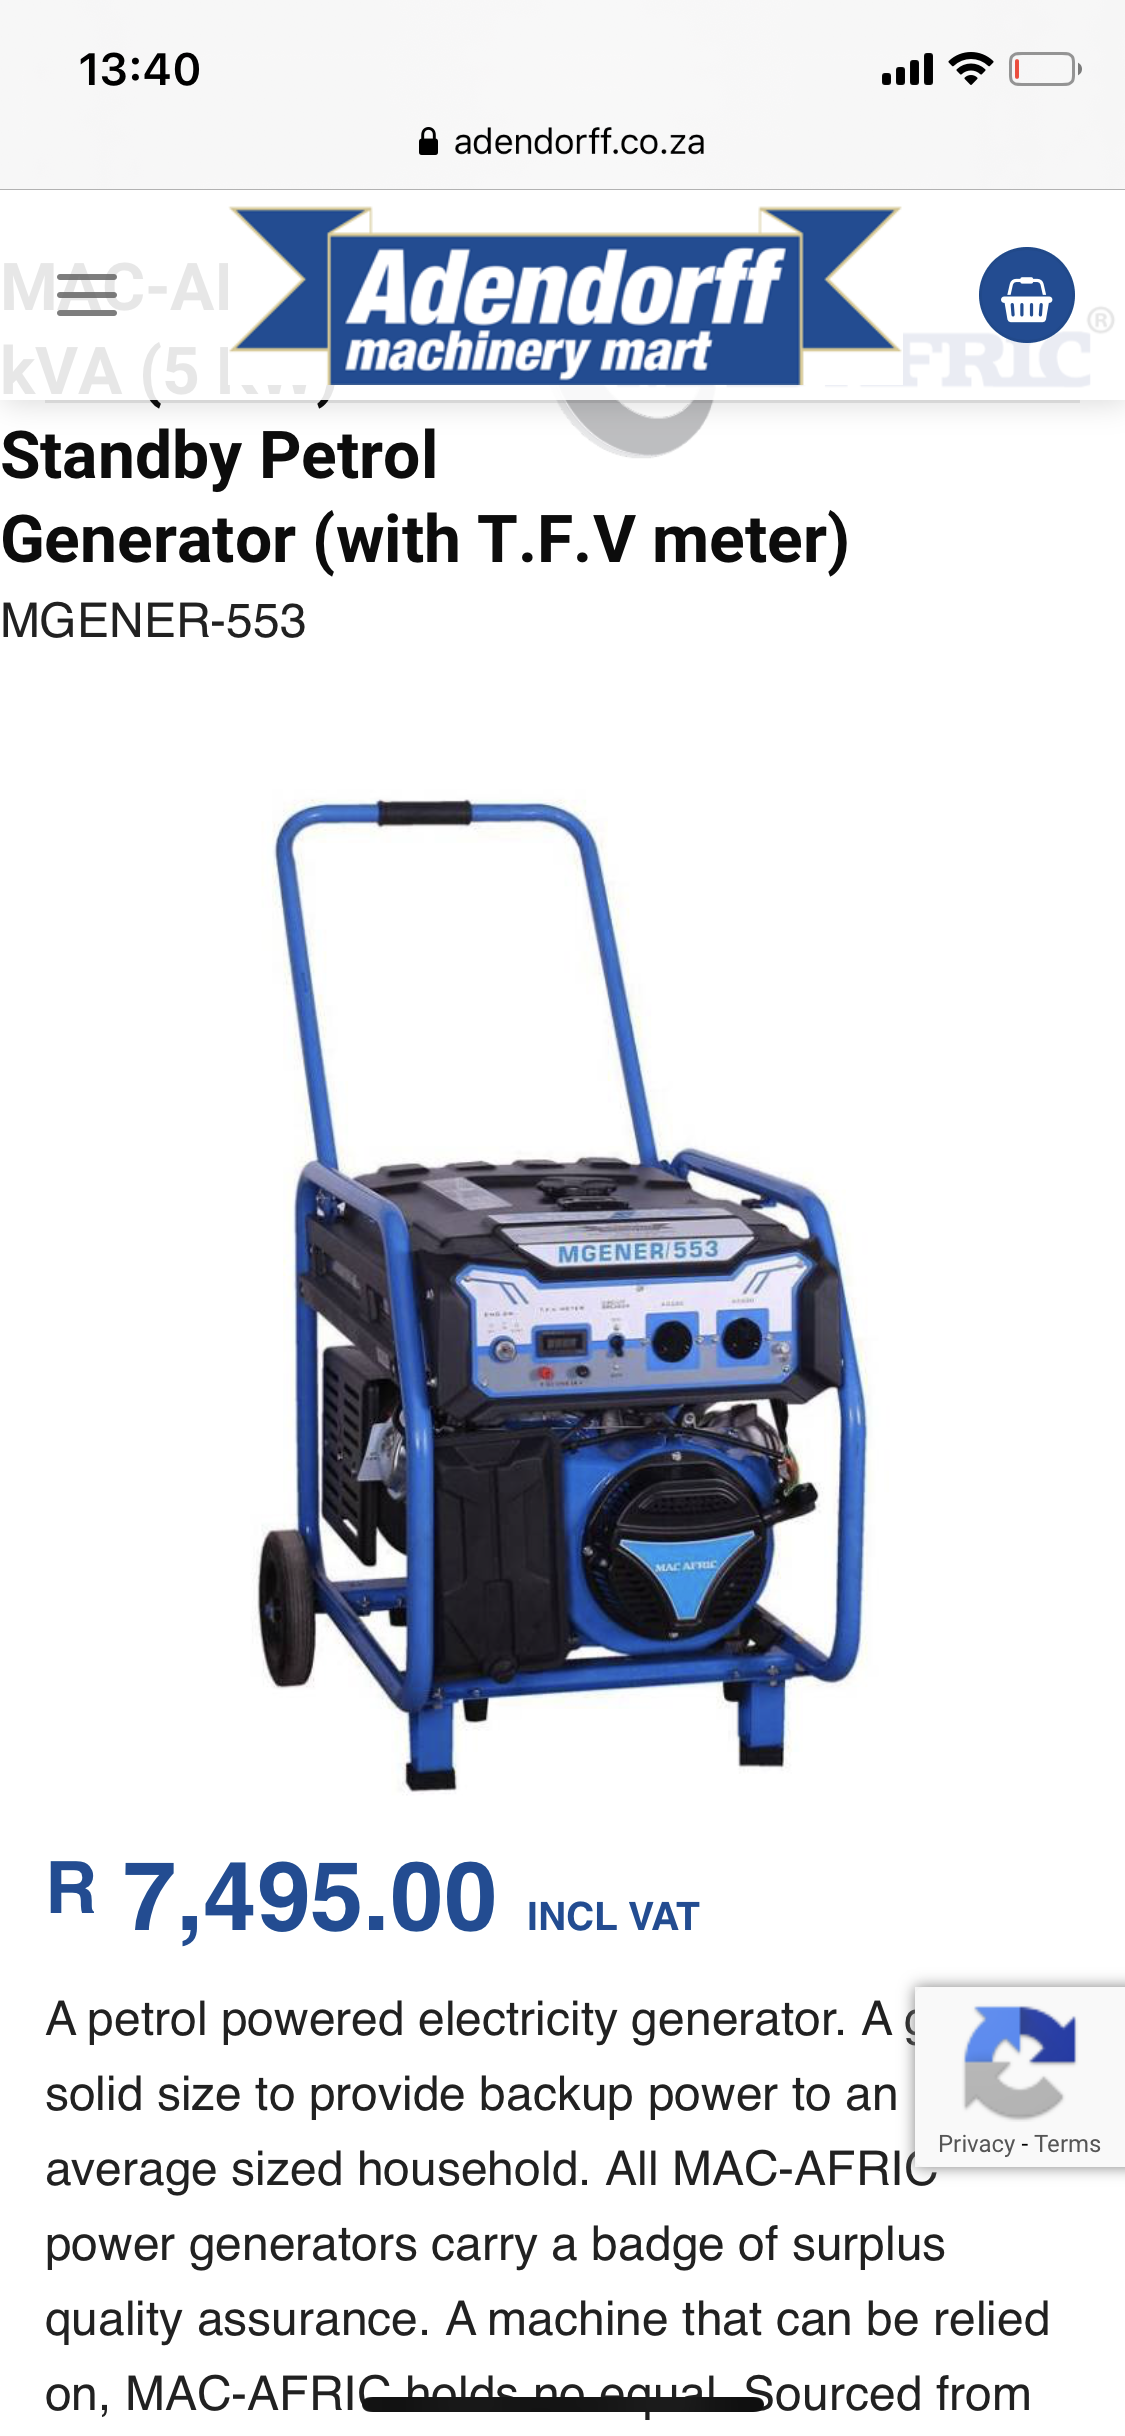 Brand new 5KW MGENER- 553 with TVF meter ( MacAfric petrol)